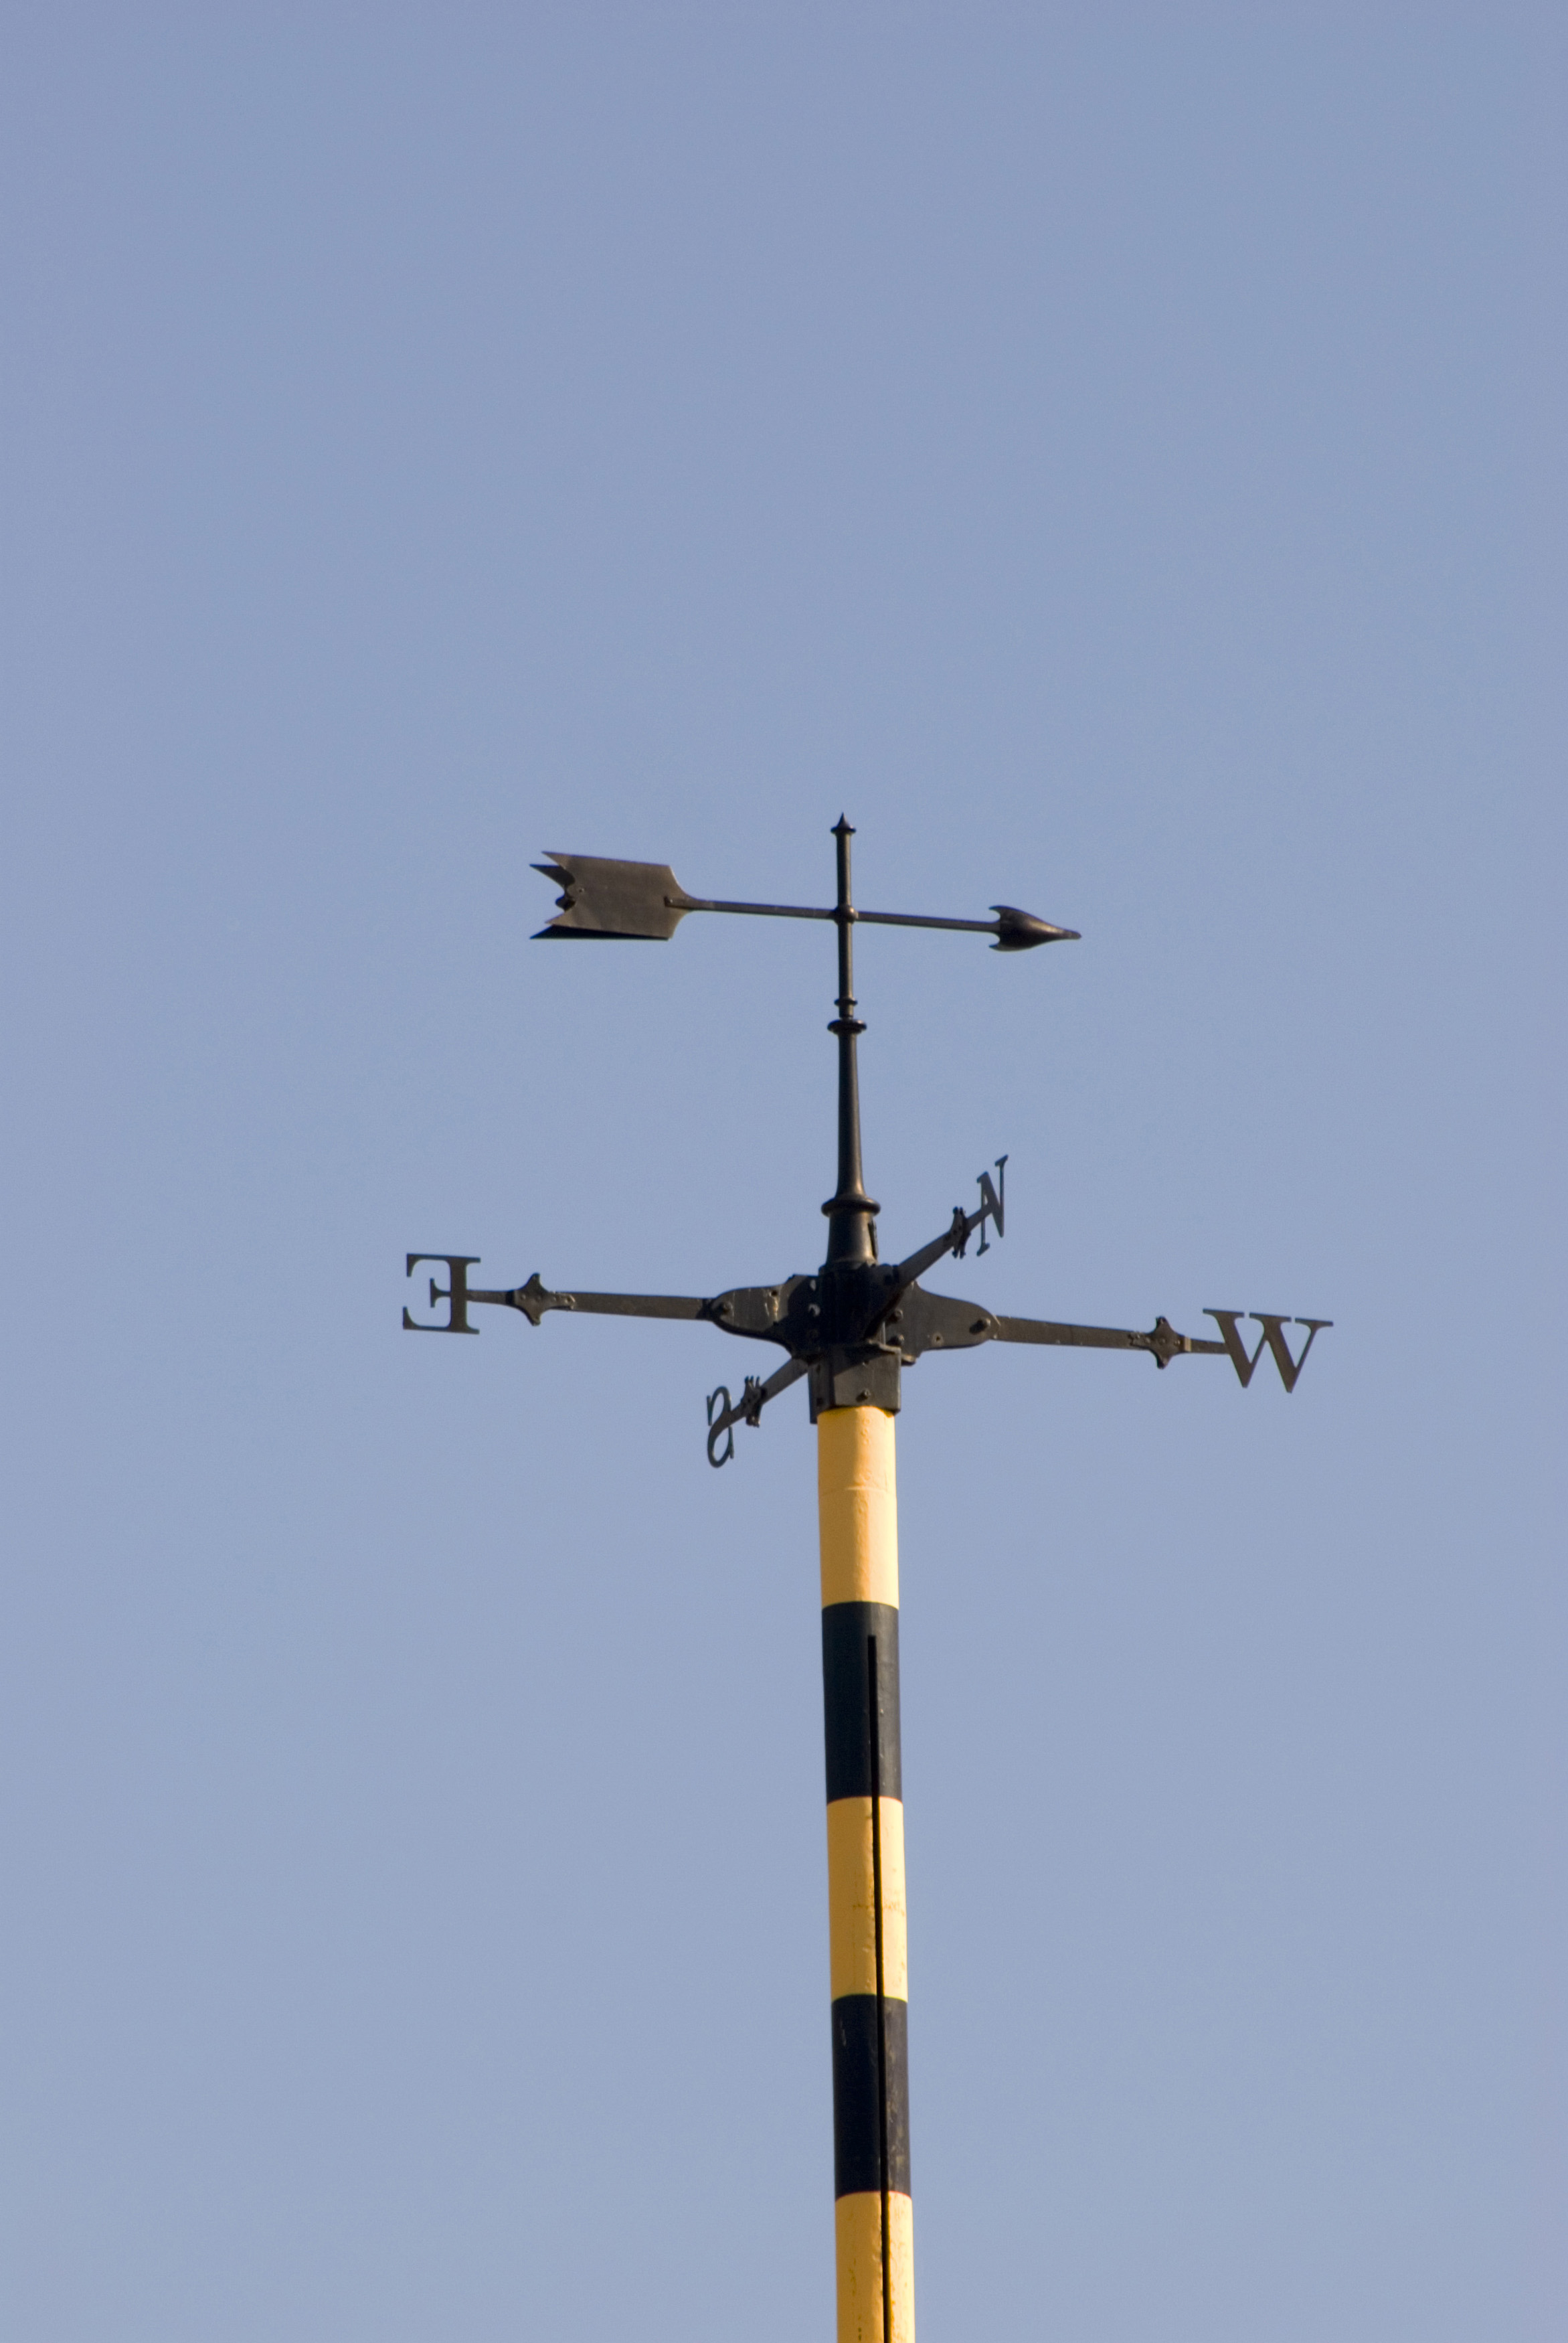 Weather vane with an arrow showing the wind direction and the four points of the compass below against a clear blue sky, this vane was located at the top of an observatory after 1pm when the time ball had fallen to the bottom of the mast